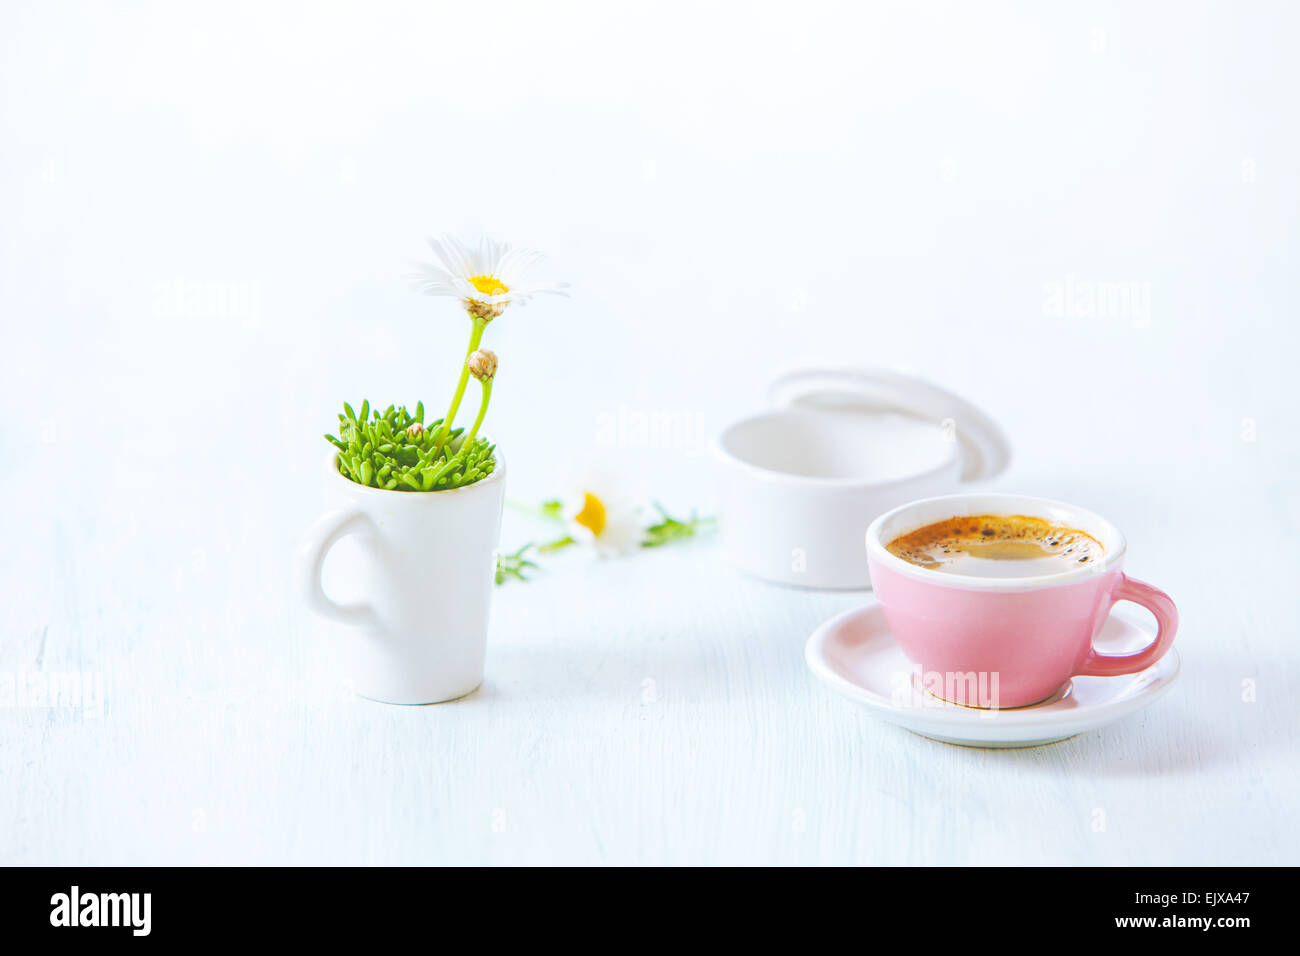 Rose une tasse de café expresso et daisy flower Photo Stock